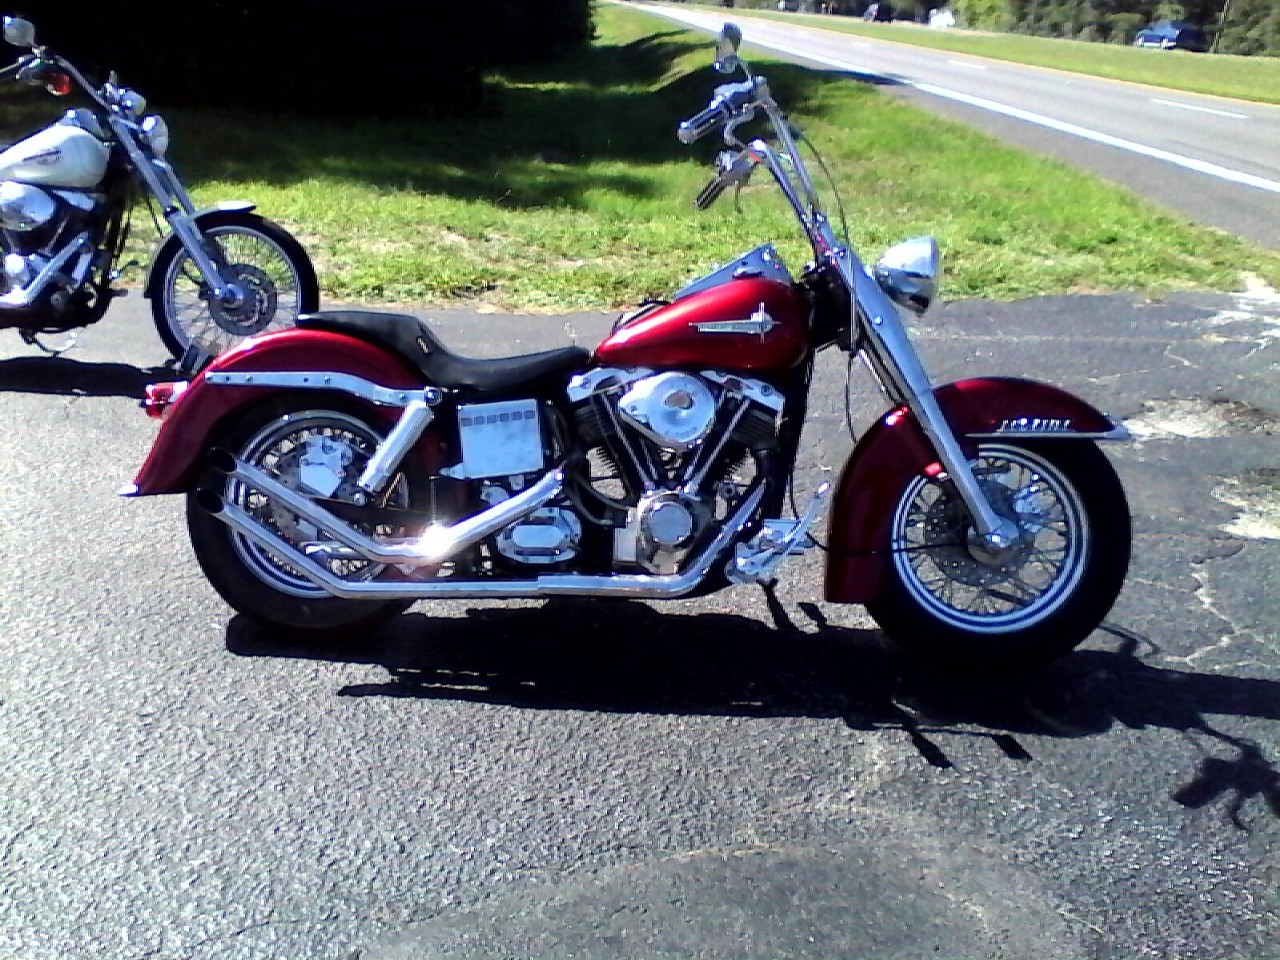 1981 Hd SHOVEL HEAD, motorcycle listing